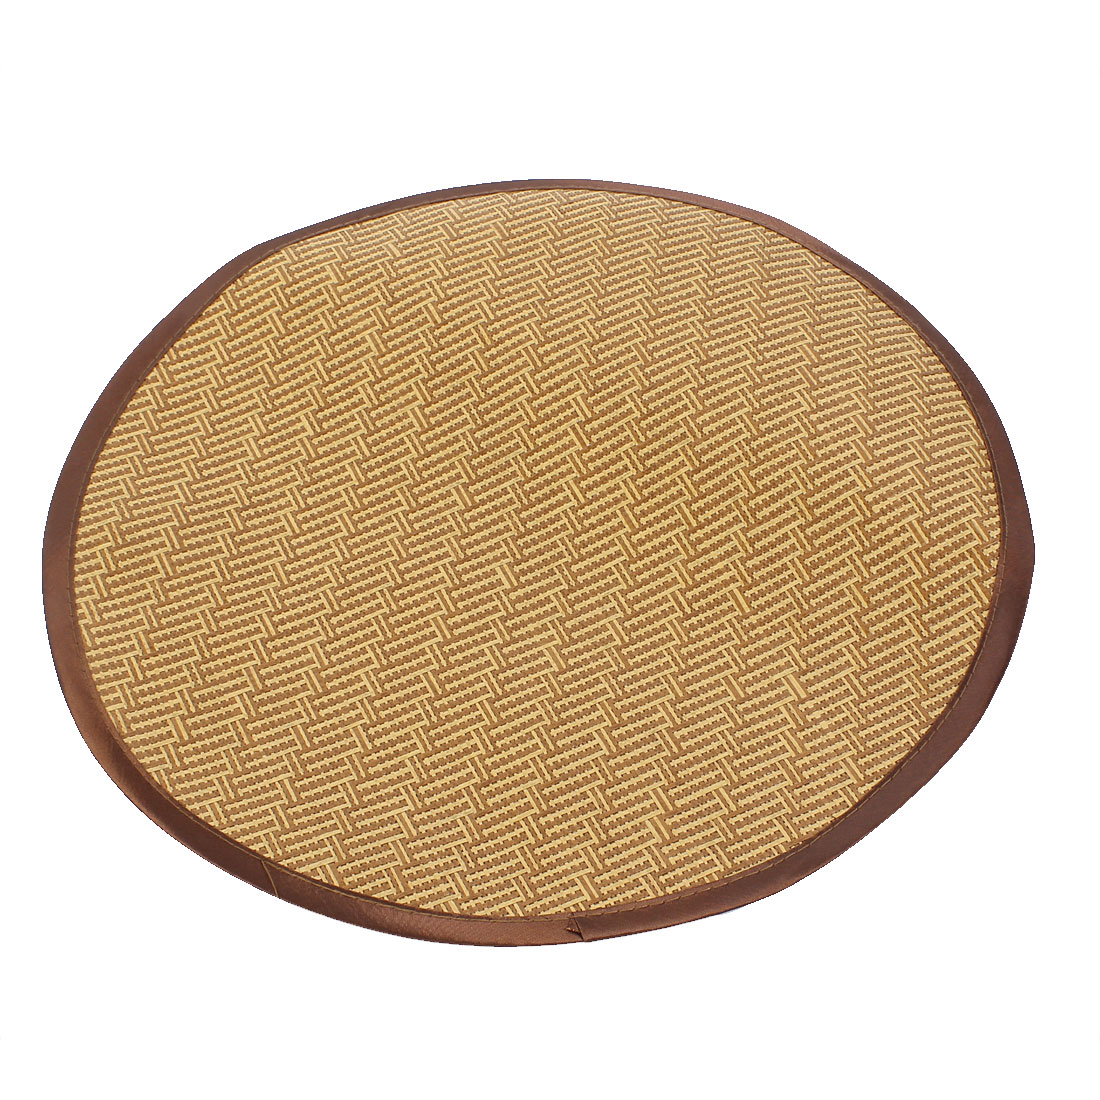 Picnic Patio 40cm Dia Round Shape Dog Doggie Cat Summer Bed Mat Pad Brown